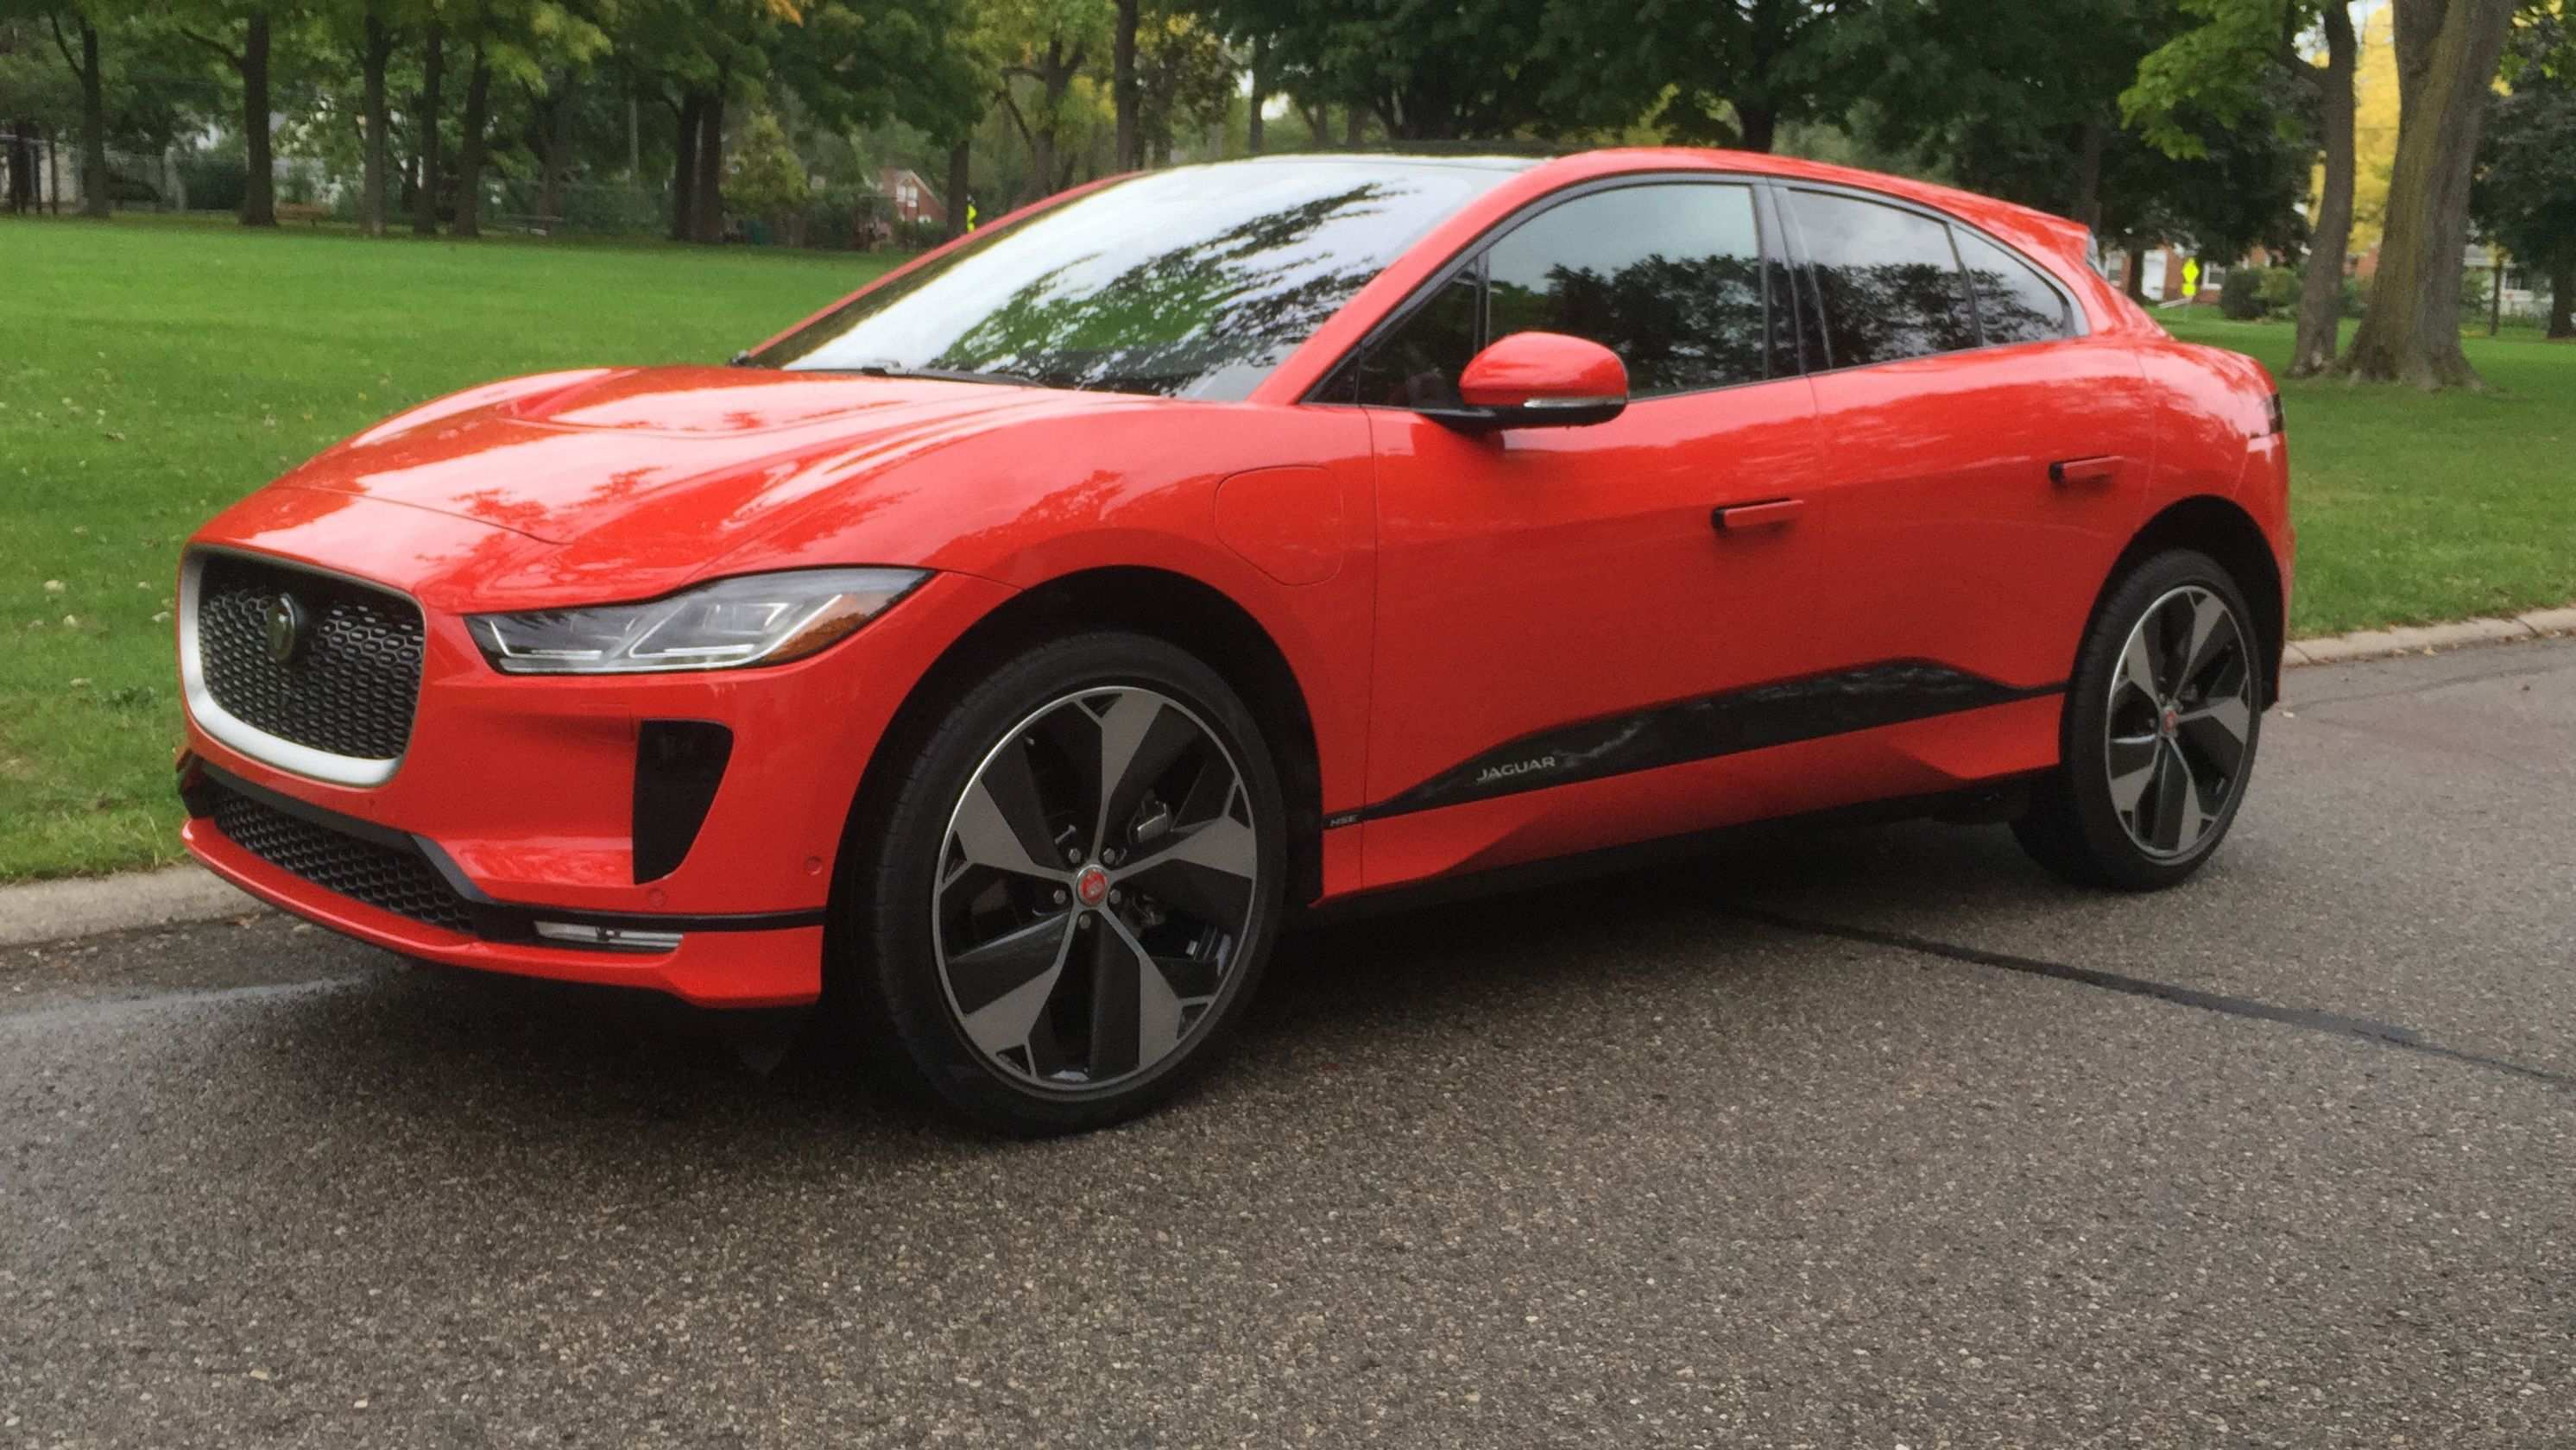 81 Concept of 2020 Jaguar I Pace Electric Spesification with 2020 Jaguar I Pace Electric